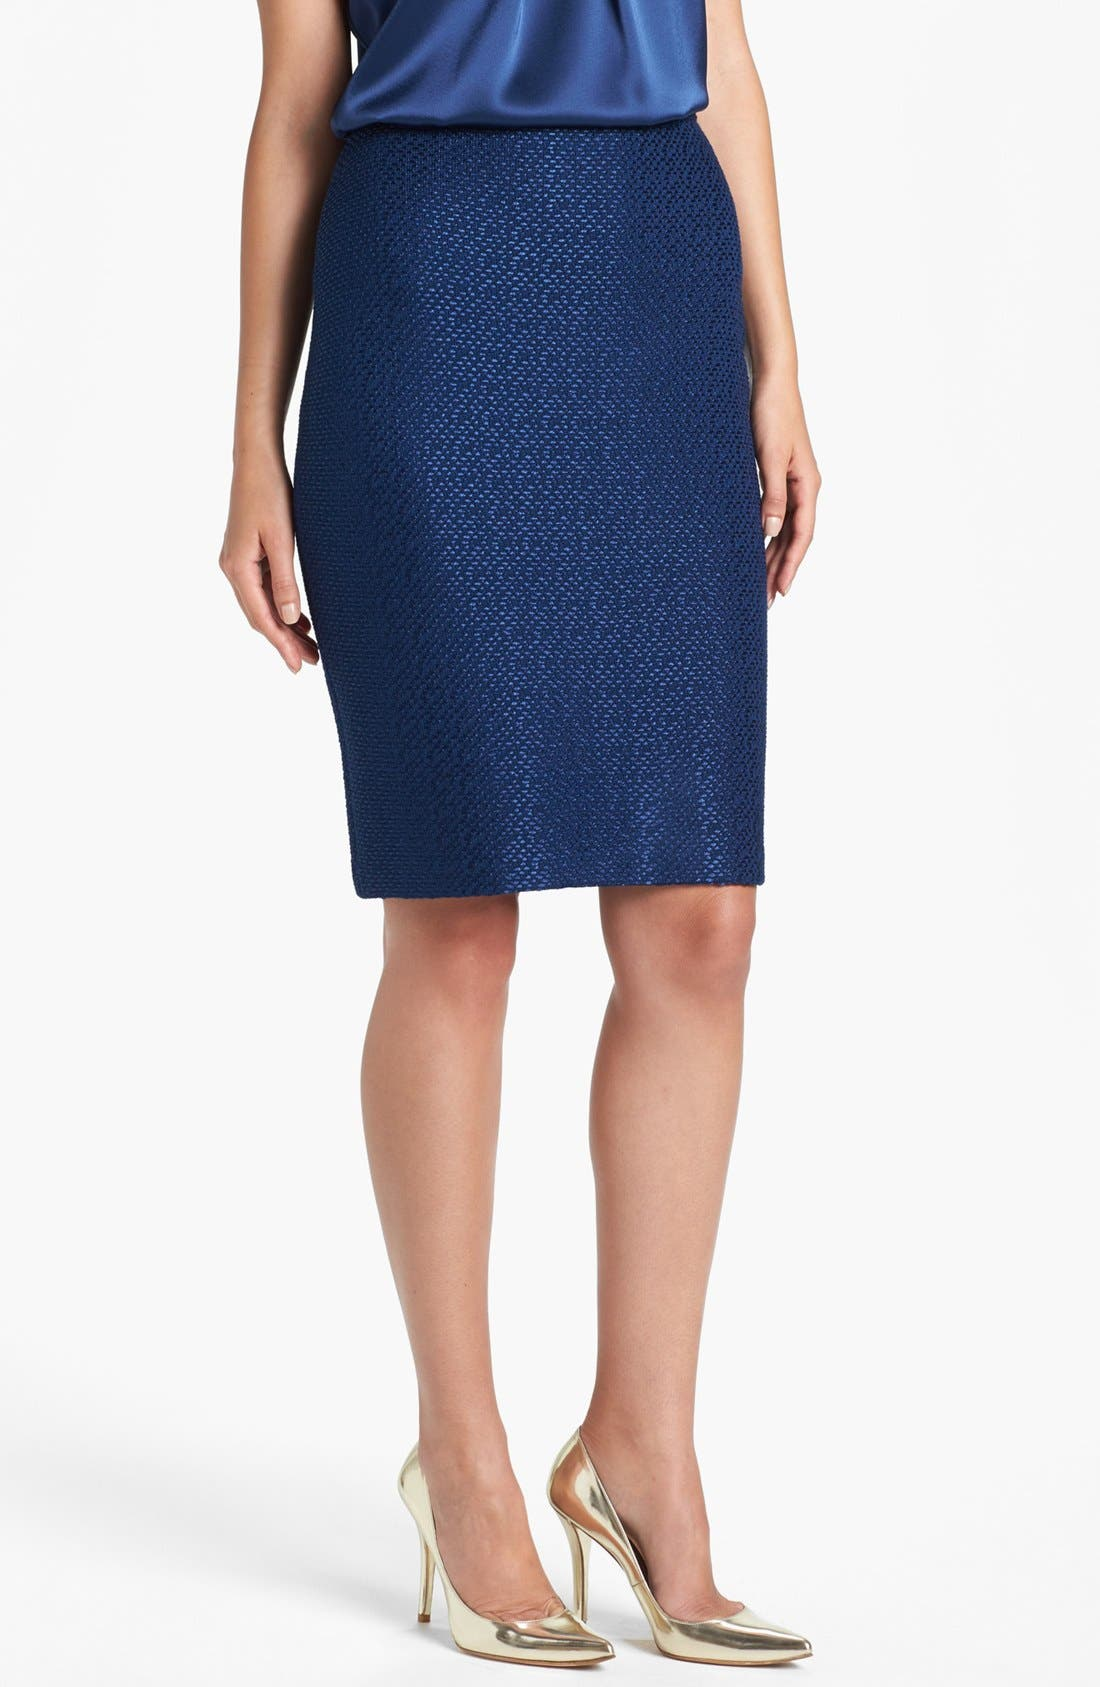 Alternate Image 1 Selected - St. John Collection Tonal Dot Knit Pencil Skirt